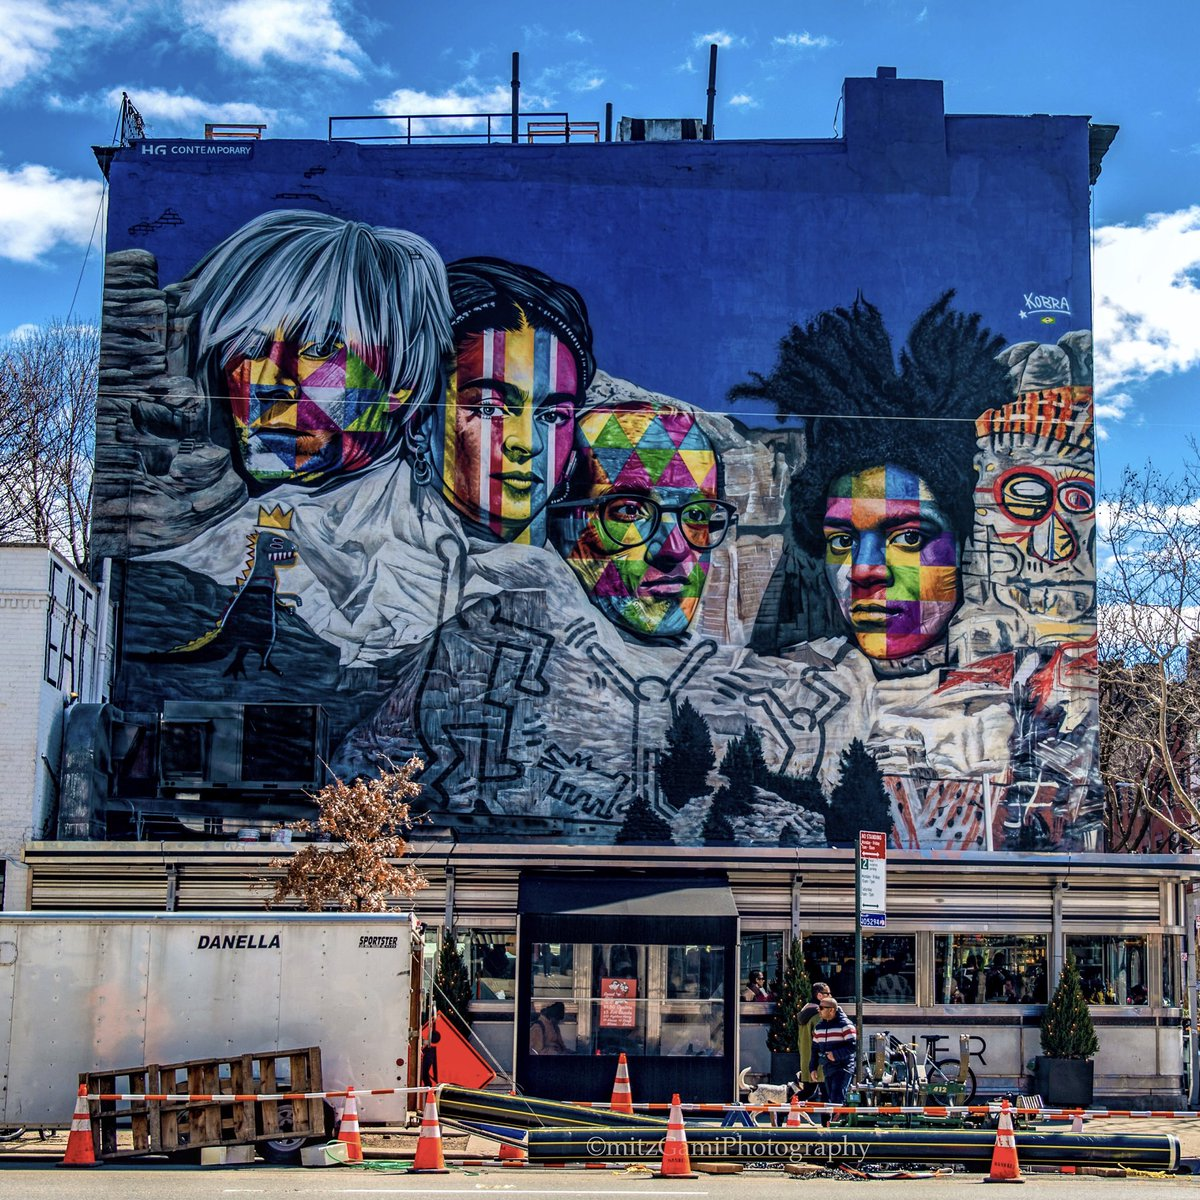 #KobraStreetArt Mount Rushmore the contemporary way of Art, featuring the great artist Andy Warhol, Frida Kahlo, Keith Haring and Jean-Michel Basquiat. #NewYorkCity #SeeYourCity #NikonNoFilter #StreetArt #thingstodoinnyc @NYCDailyPics @nycfeelings #NYCG<br>http://pic.twitter.com/BFu7q7fbM5